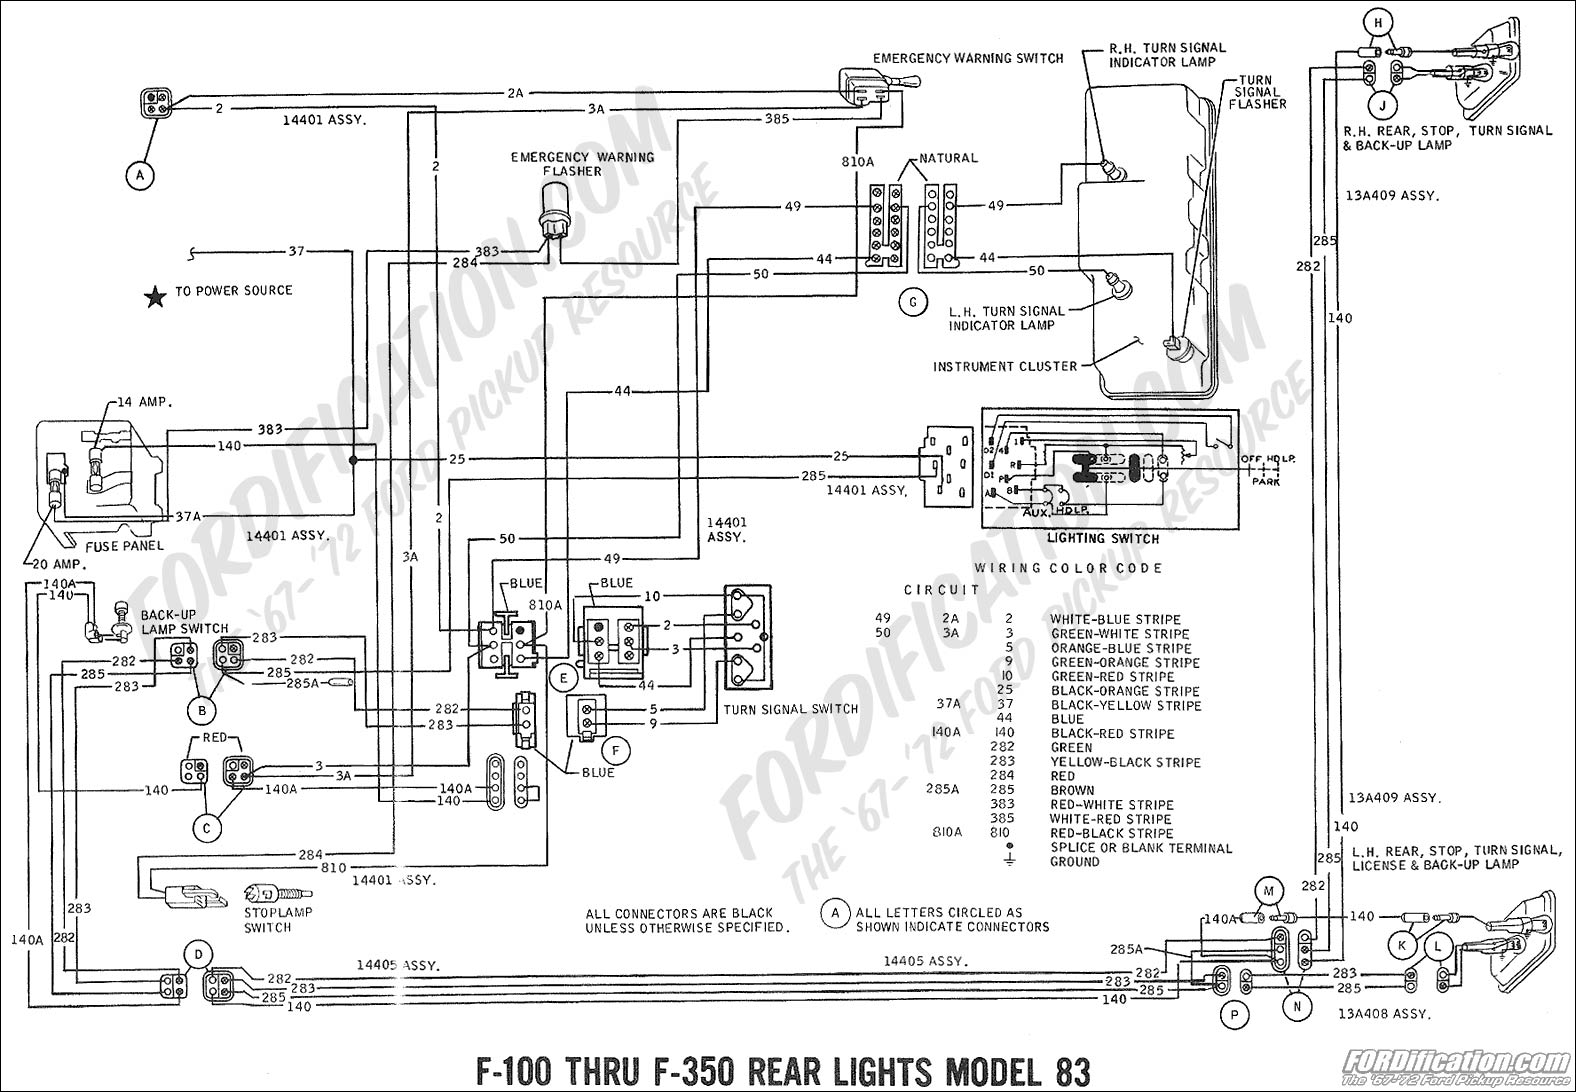 1971 ford f 250 explorer wiring diagram - basic diesel wiring diagram for wiring  diagram schematics  wiring diagram schematics